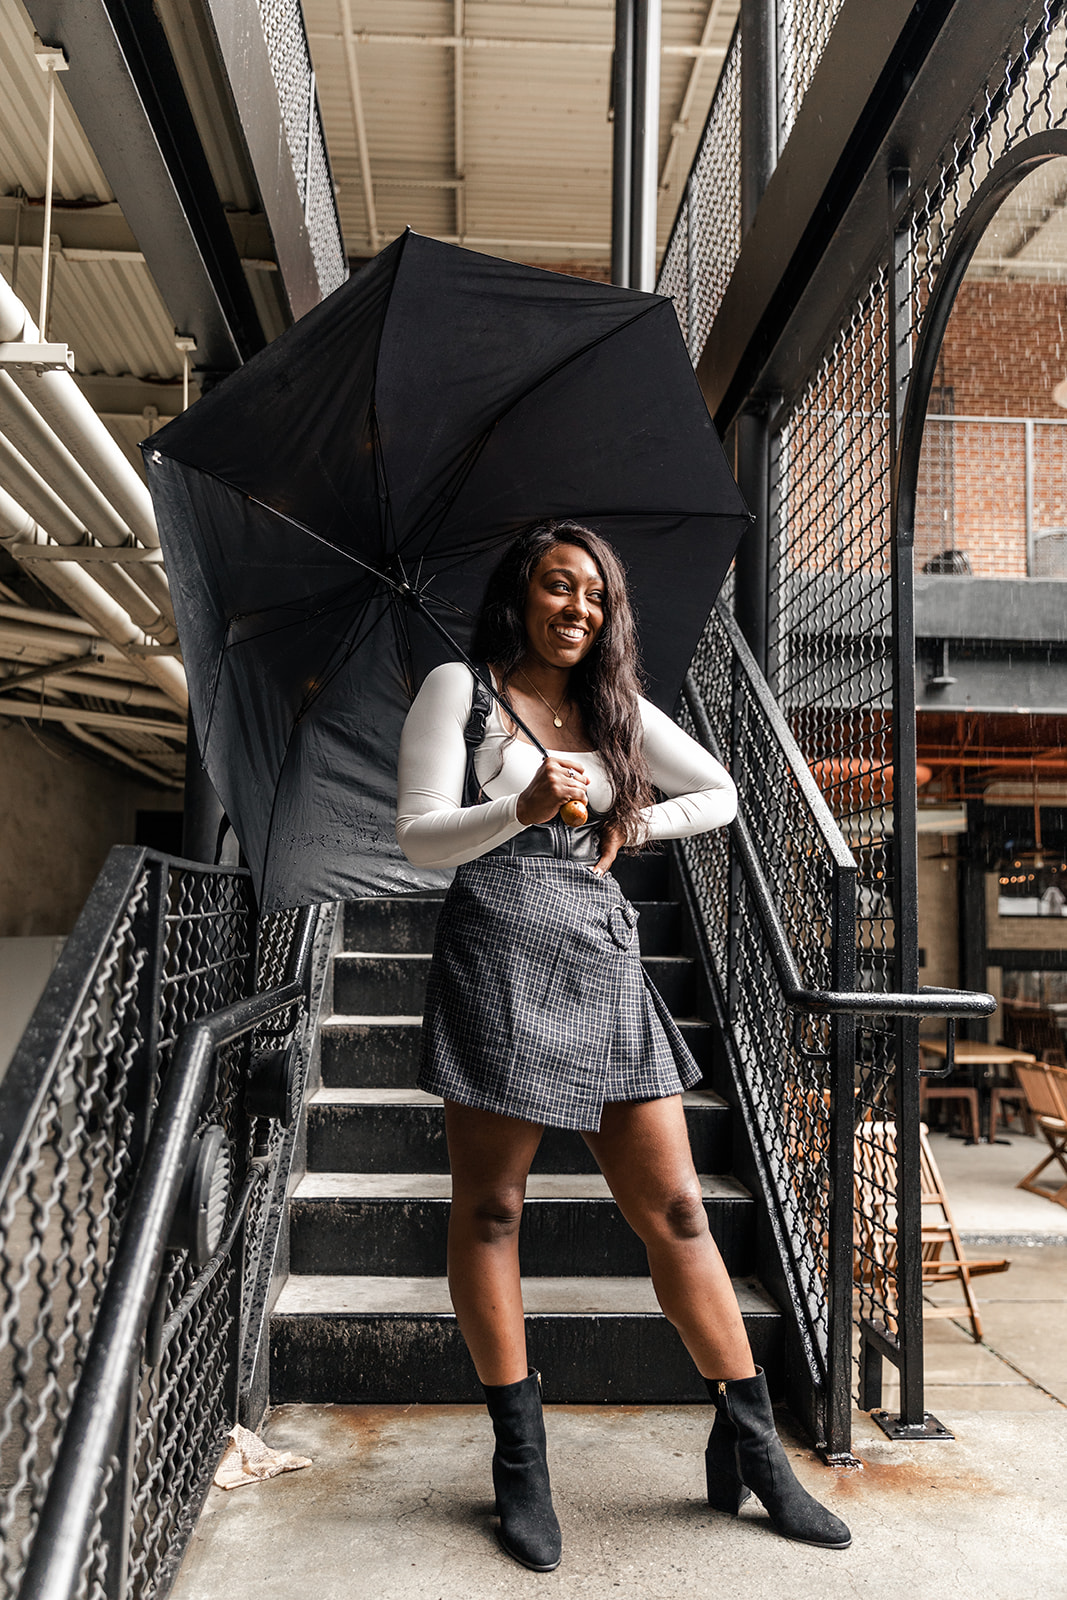 Jordan Taylor C | How I Create Consistent Content on Instagram + A Freebie, black female bloggers, how to create consistent IG content, create consistent Instagram content, Atlanta blogger, create a consistent Instagram, Instagram consistency, blogger tips and resources, bloggers tips